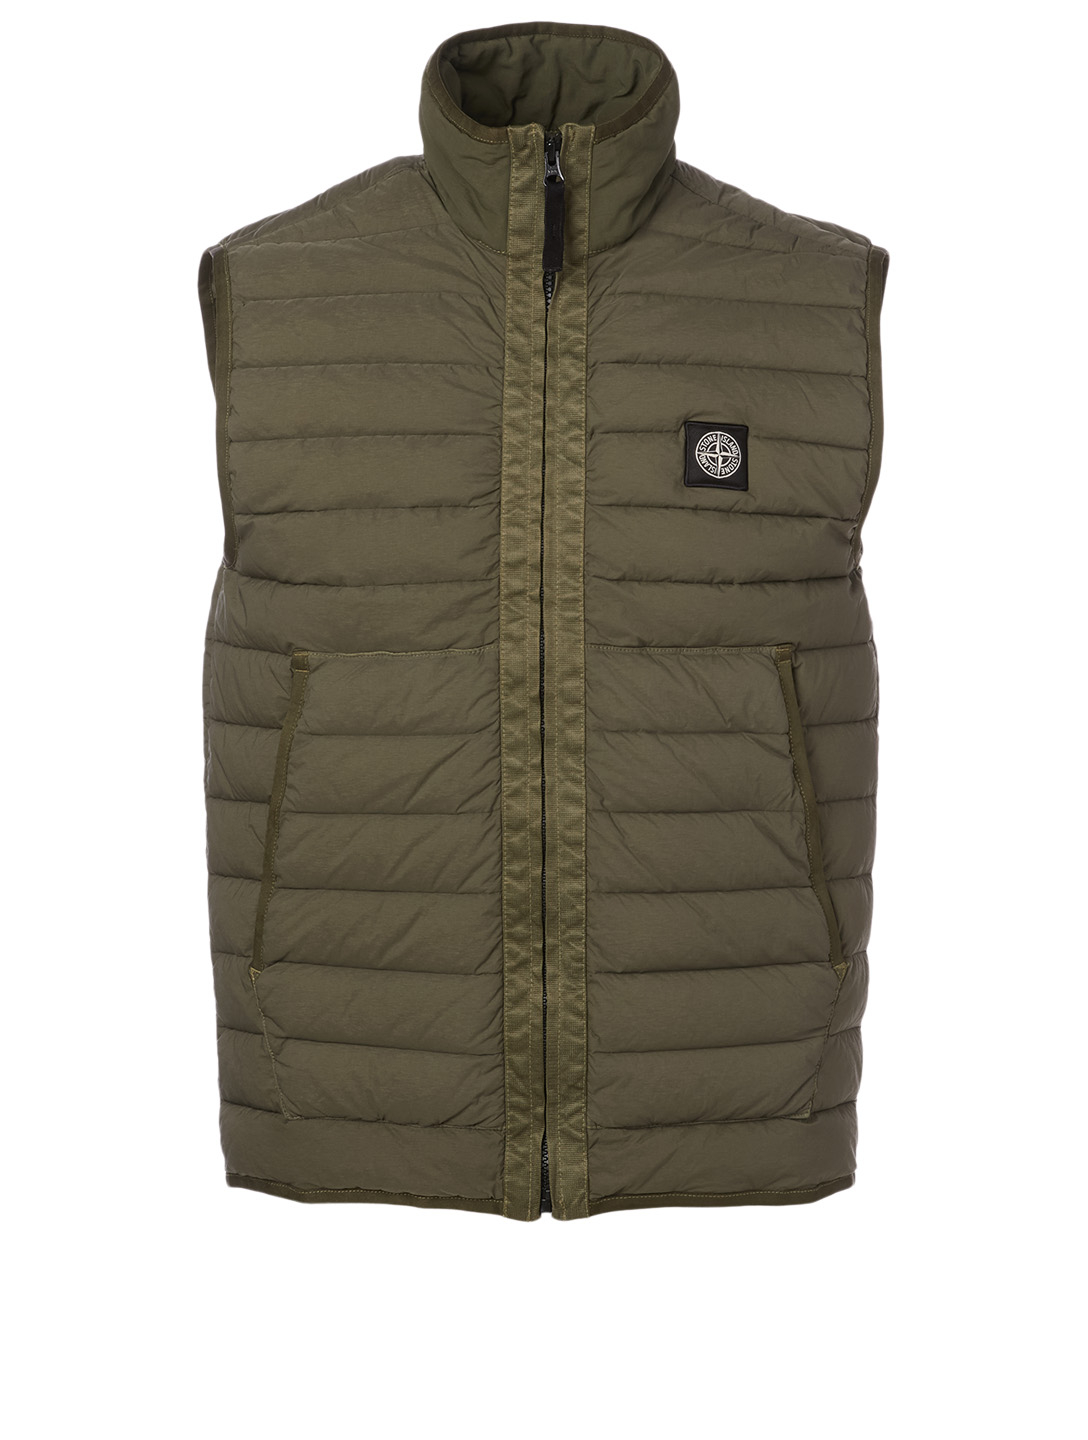 STONE ISLAND Nylon Zip Vest Men's Green